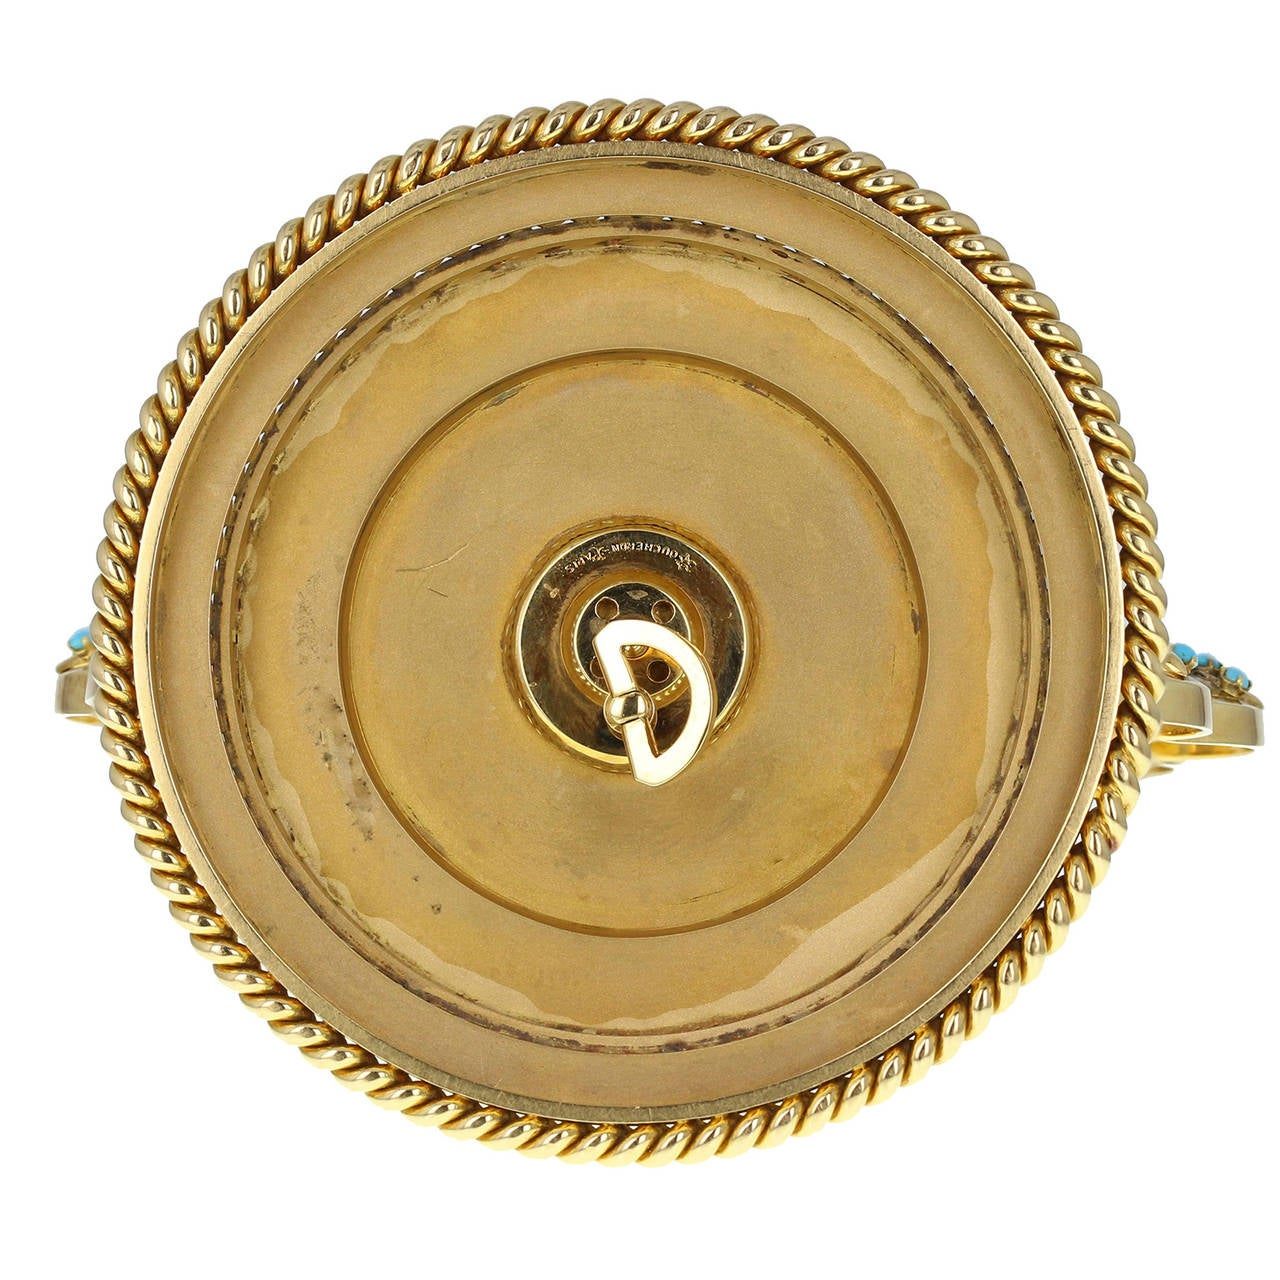 Important Boucheron Imperial Iranian Presentation Gem Set Gold Clock 1955 In Excellent Condition In Newcastle Upon Tyne, GB